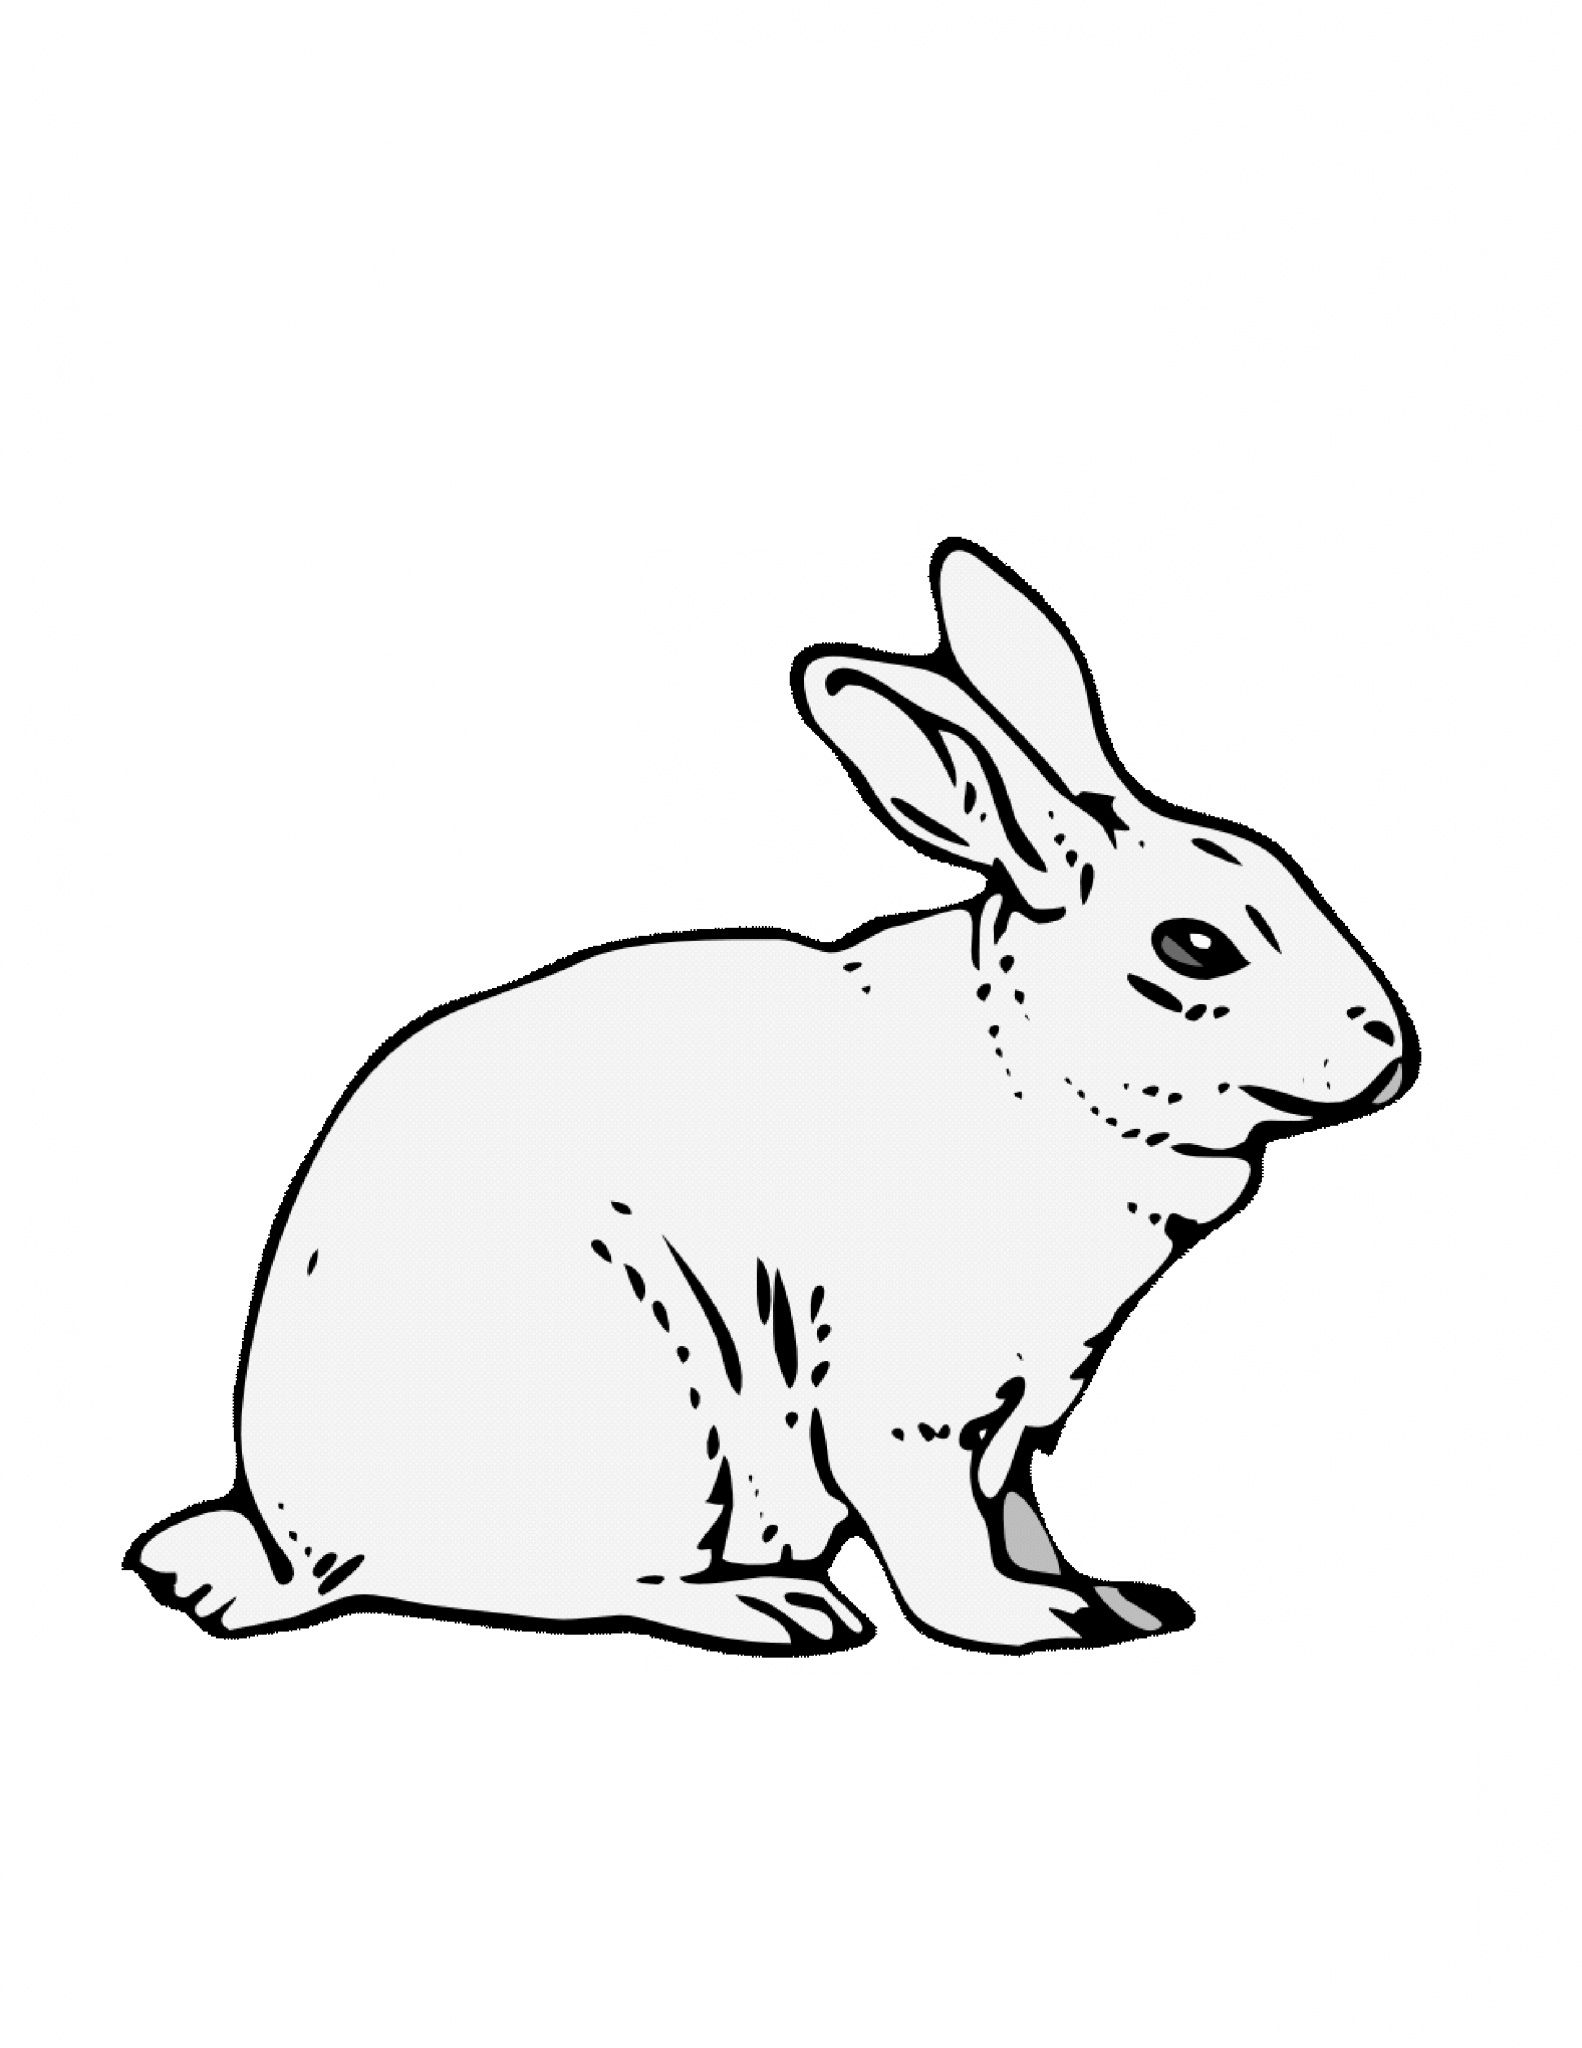 bunny coloring pages 60 rabbit shape templates and crafts colouring pages coloring bunny pages